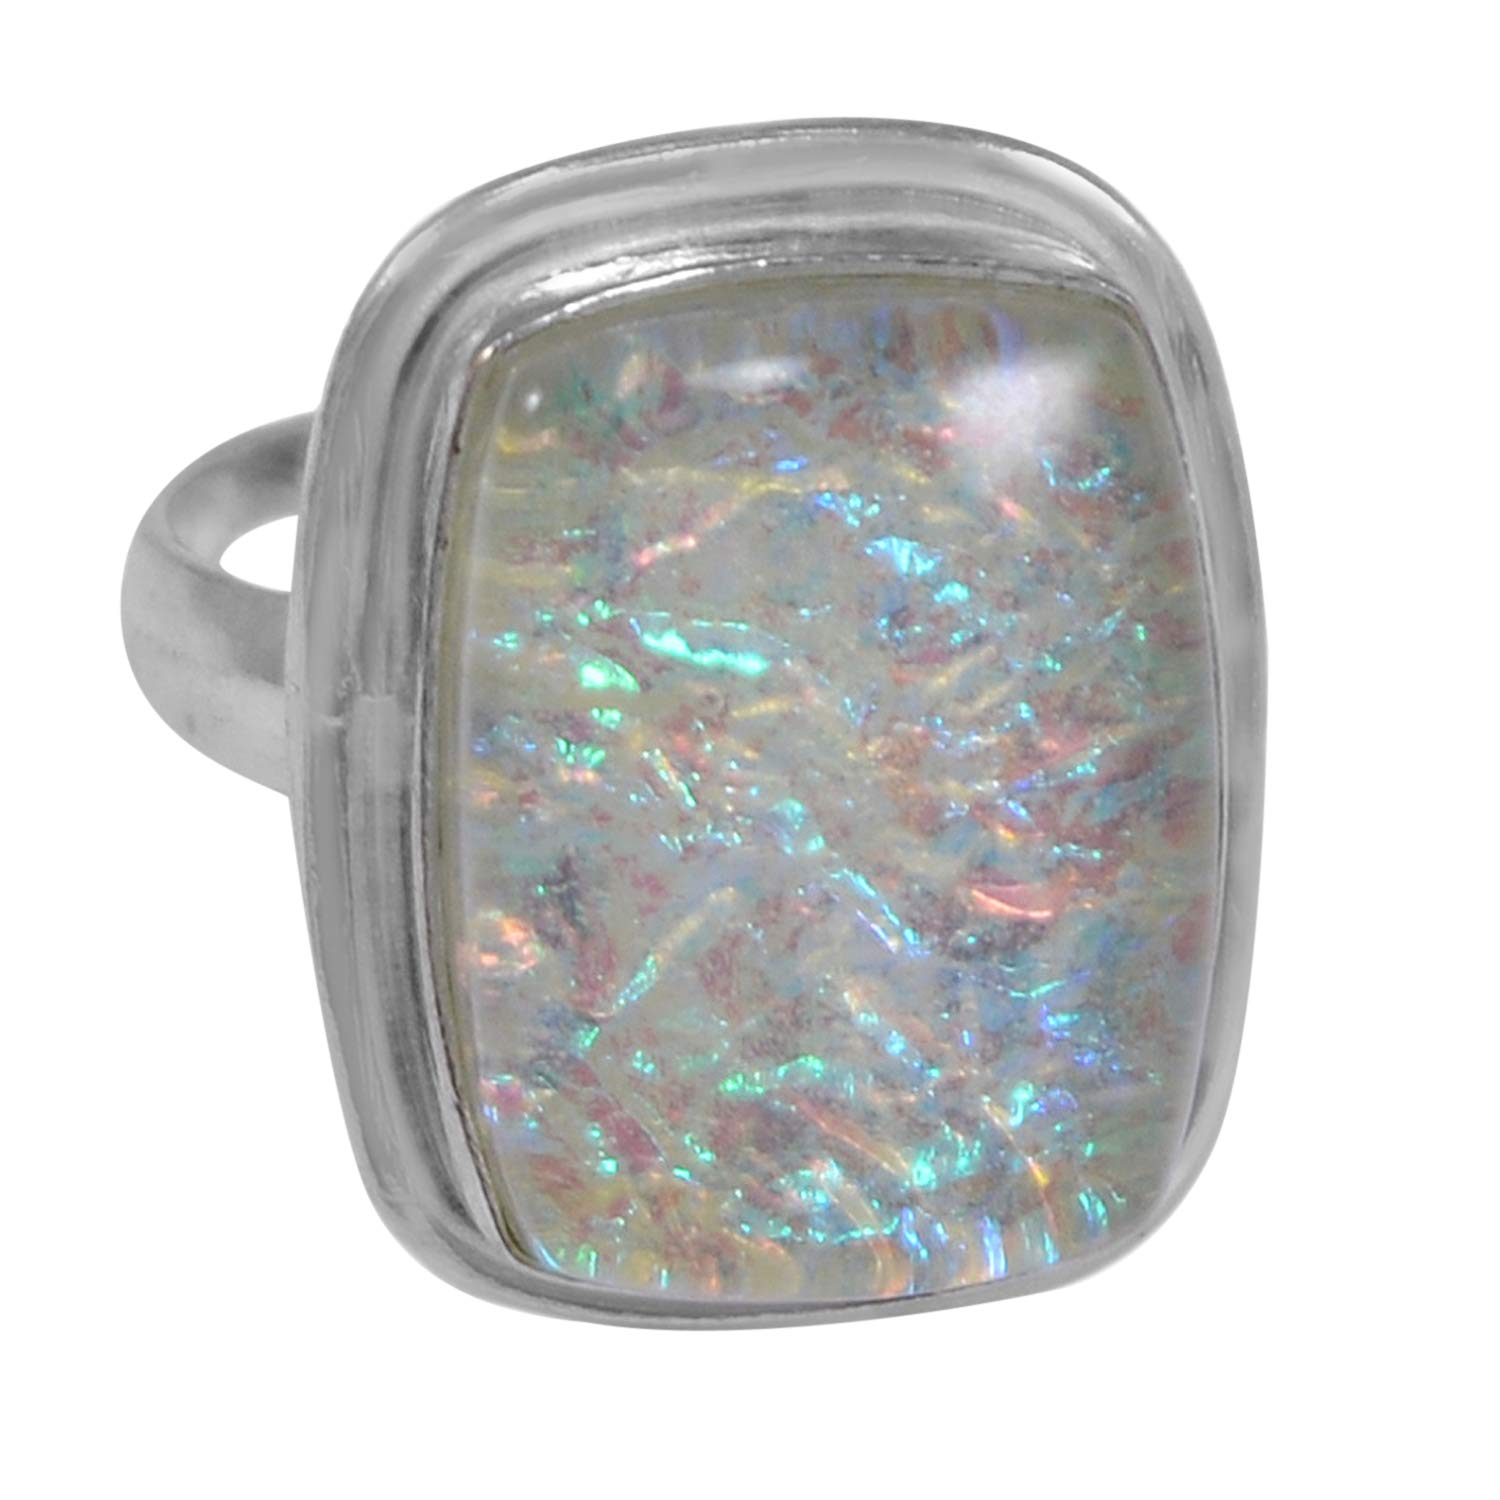 Saamarth Impex Dichroic Glass Gemstone 925 Silver Plated Ring Sz 7 PG-117174